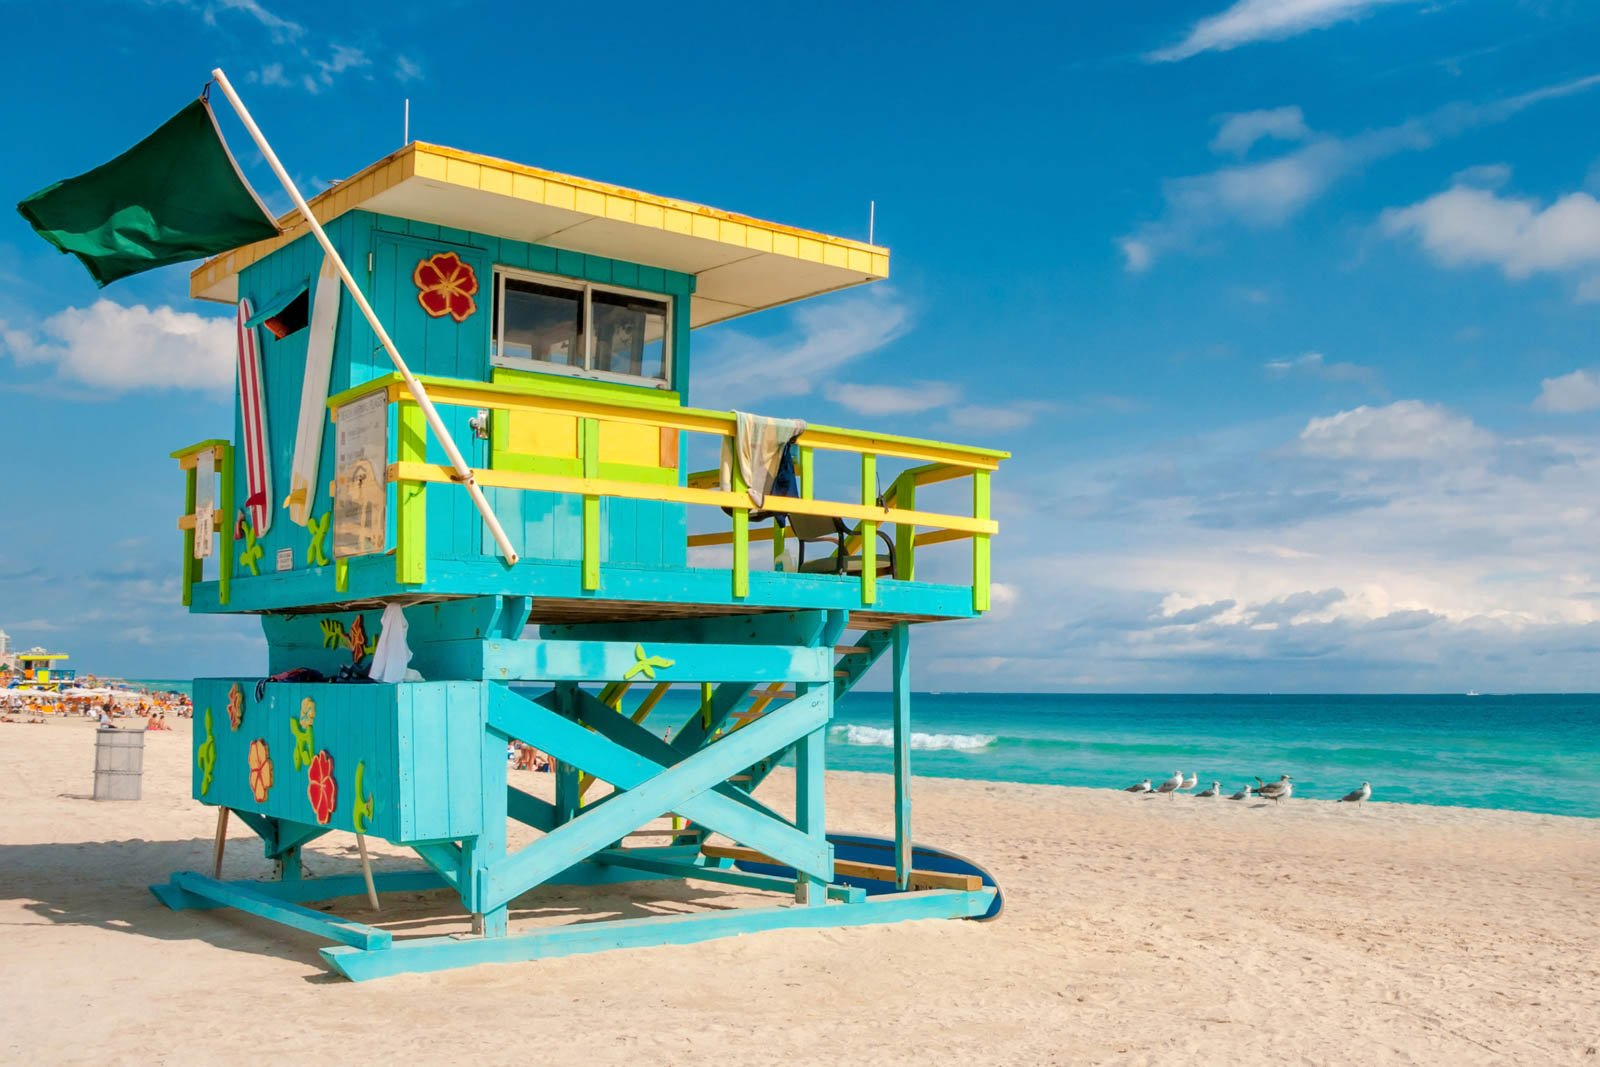 Lifeguard Tower in South Beach. One of our favorite places to visit in Florida is Miami's most popular beach. There are so many things to do in South Florida, but this is one you should make time for.